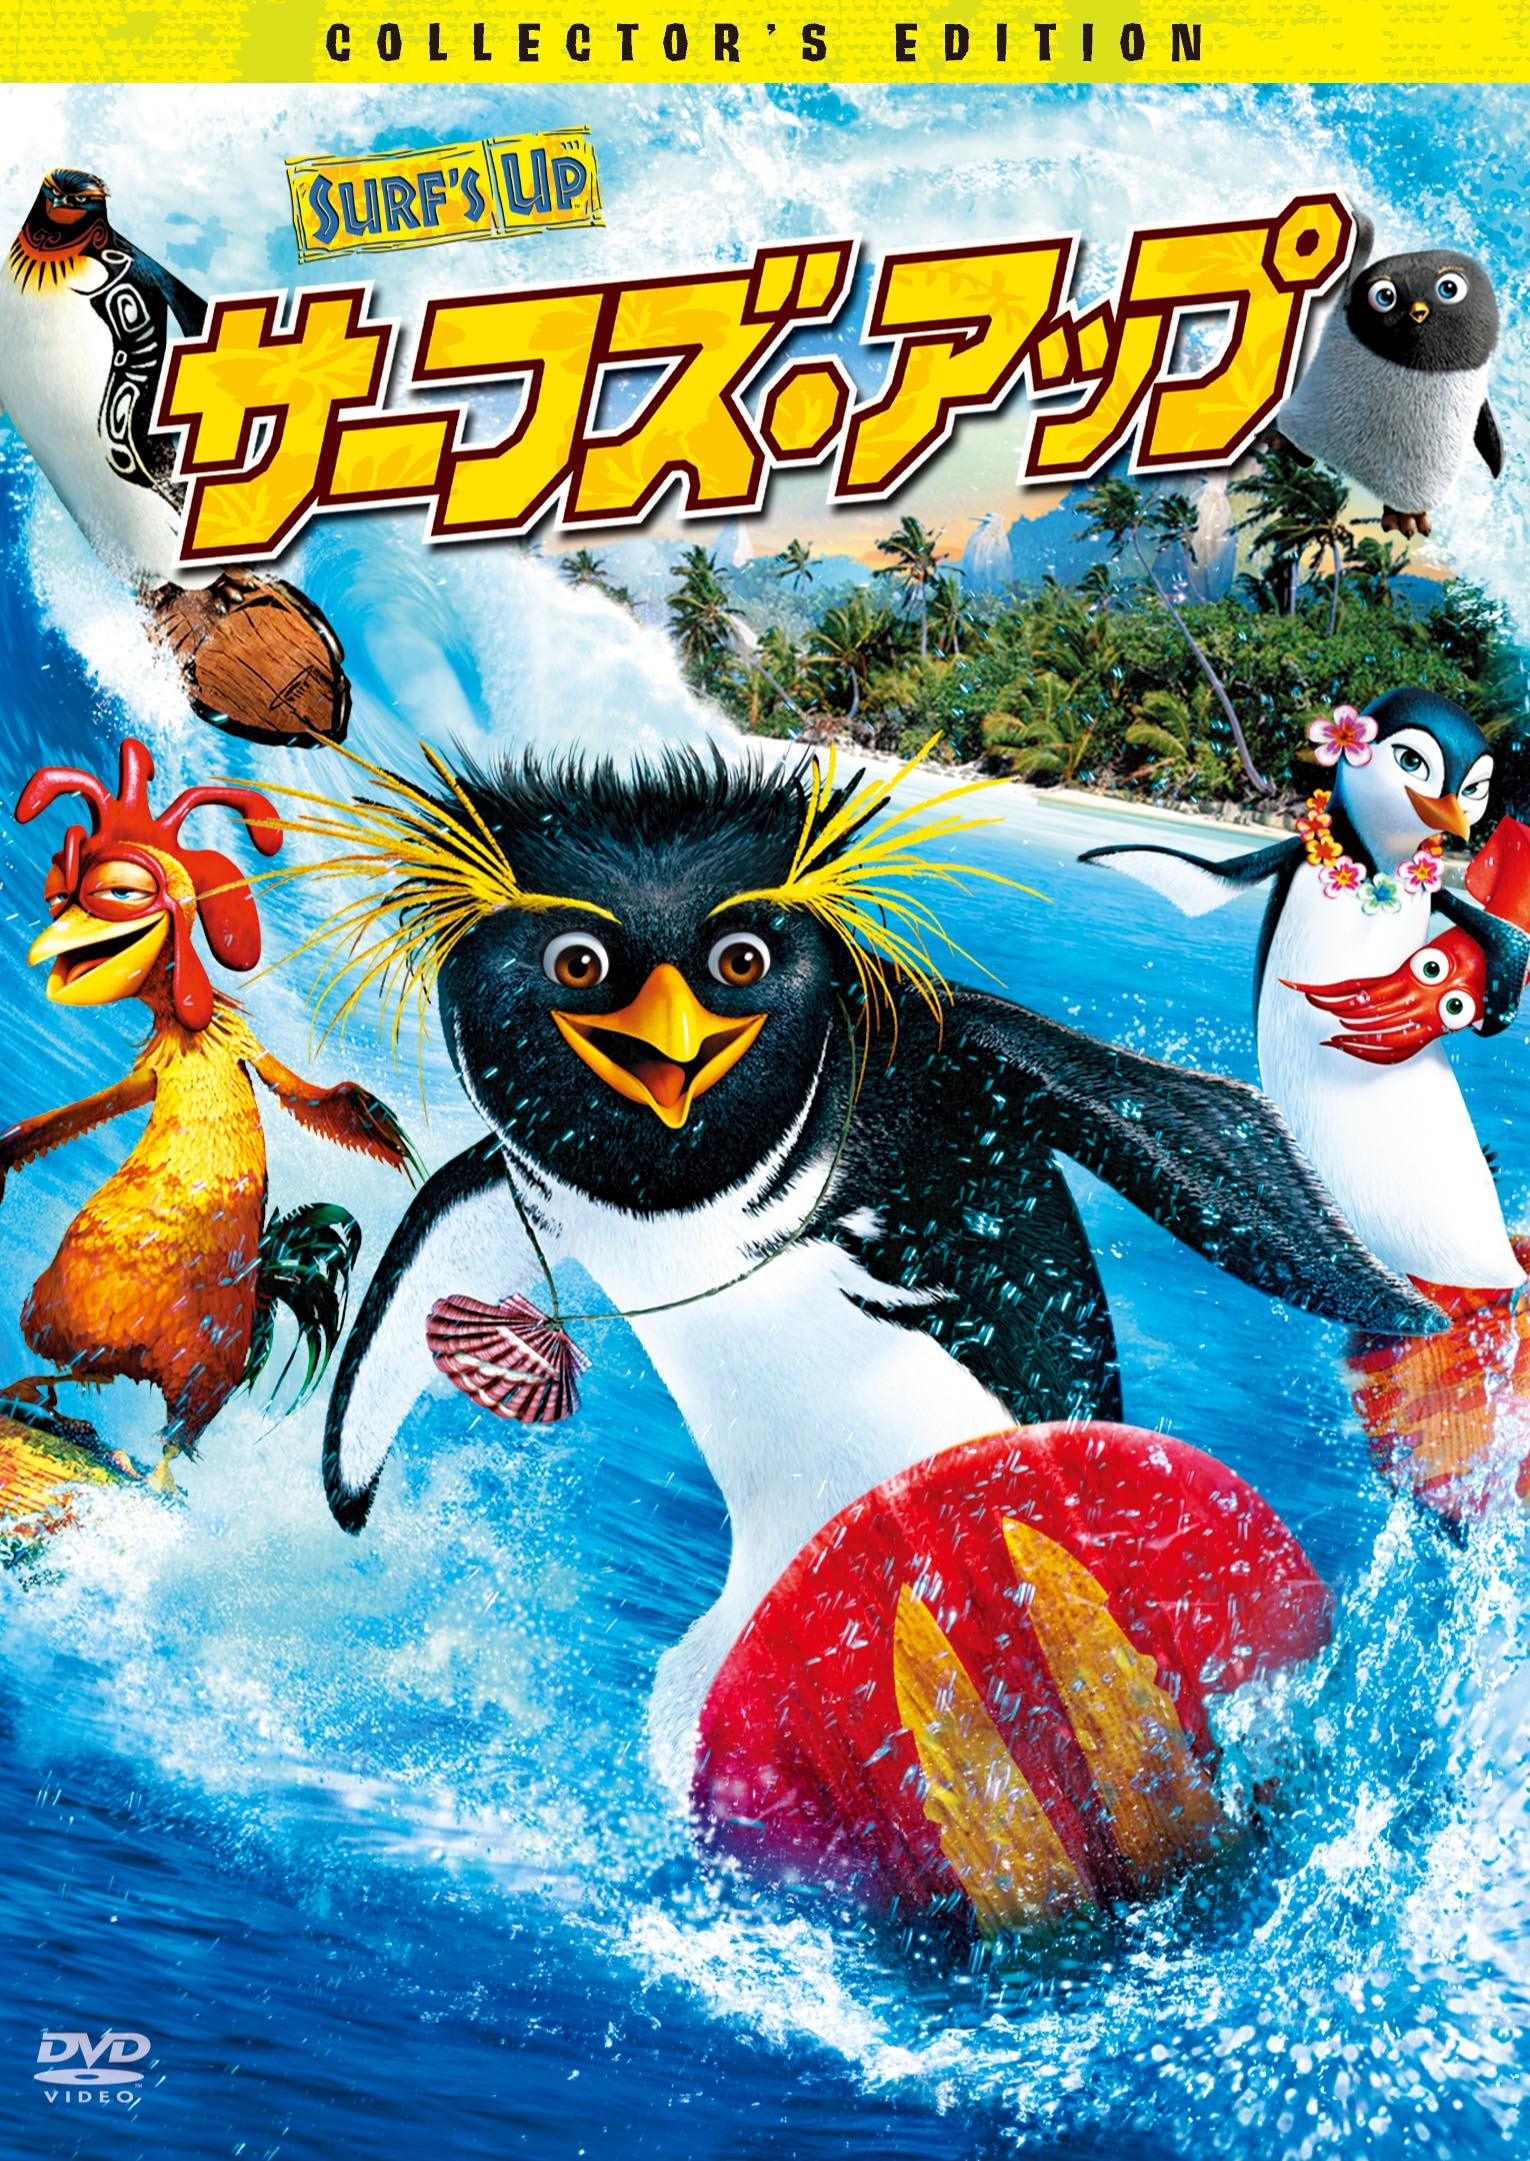 Surf S Up:Collector S Edition [Edizione: Germania]